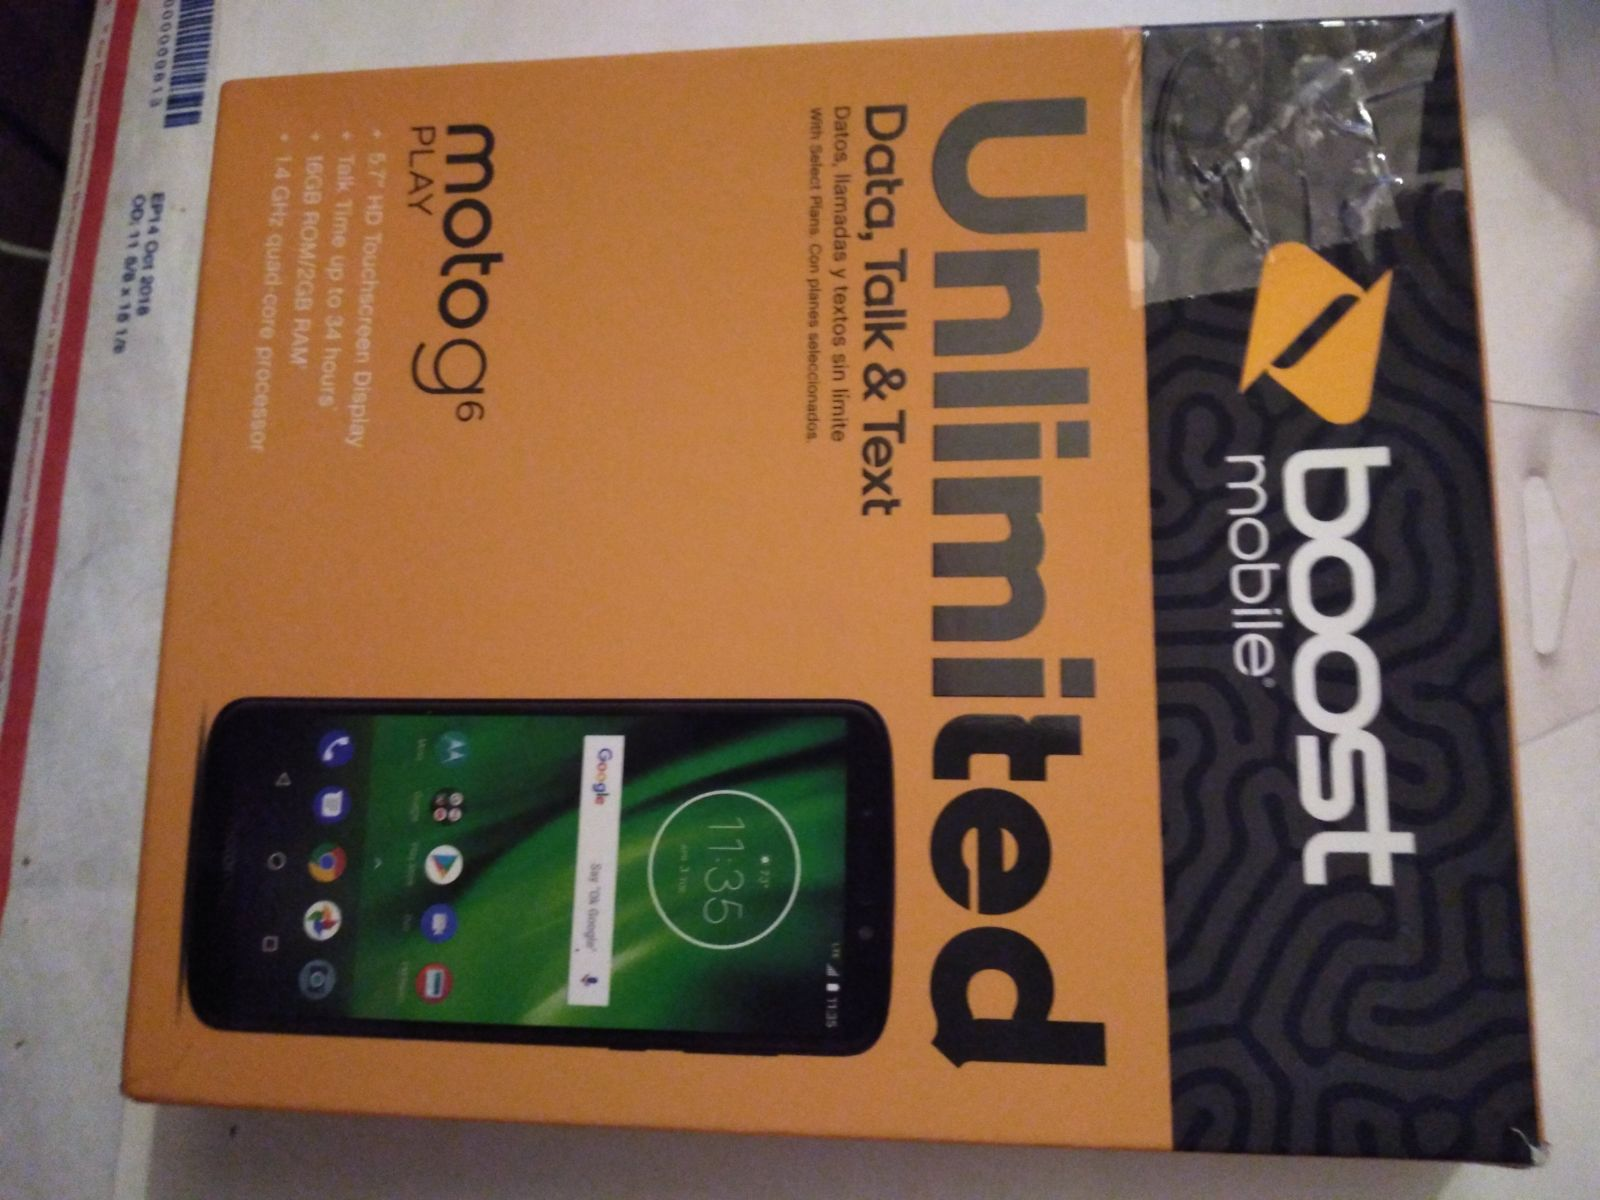 Motorola G6 play for Boost mobile in min